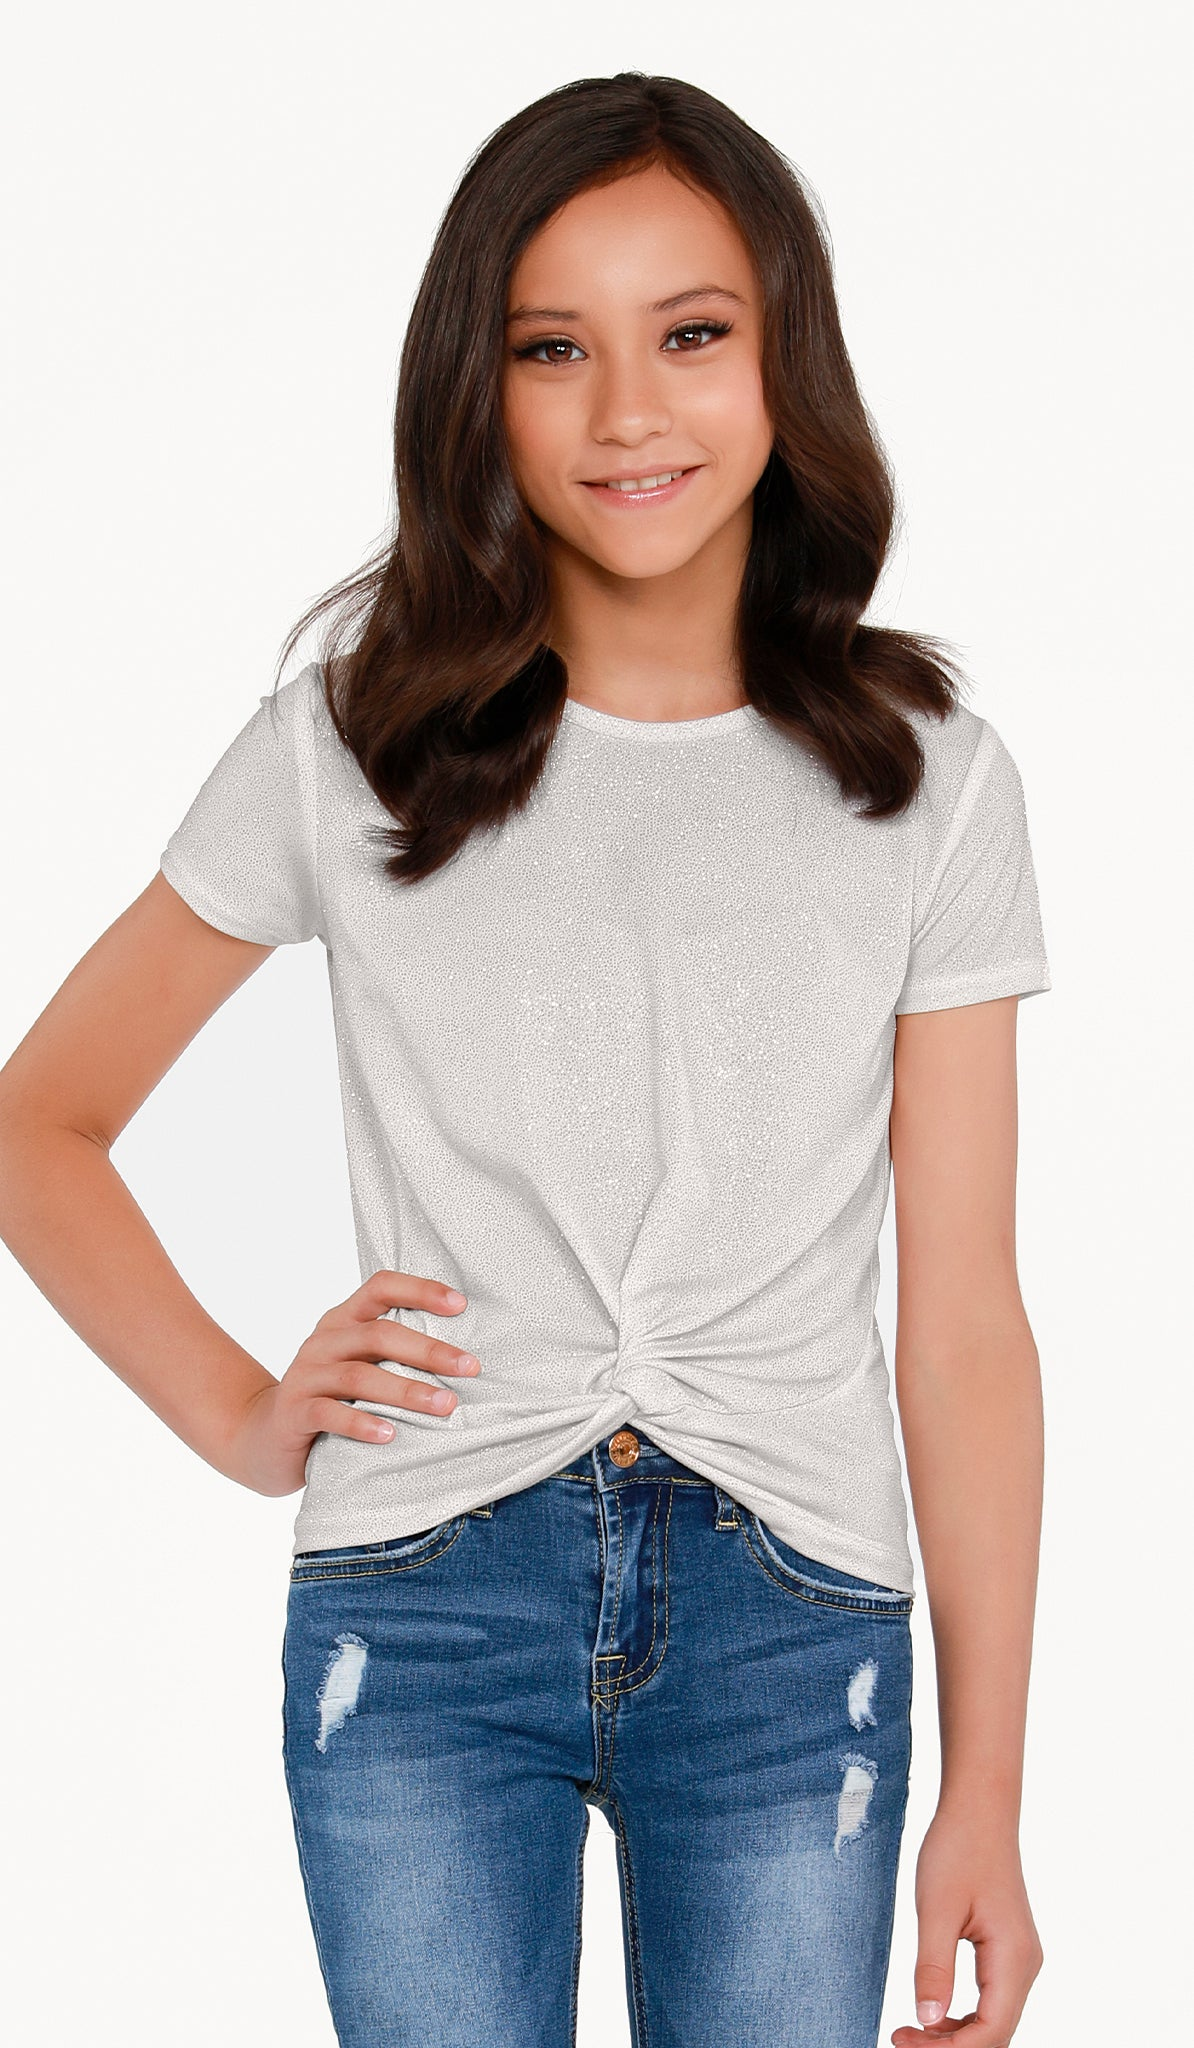 THE SPARKLE KNOT TOP - Sallymiller.com - [variant title] - | Event & Party Dresses for Tween Girls & Juniors | Weddings Dresses, Bat Mitzvah Dresses, Sweet Sixteen Dresses, Graduation Dresses, Birthday Party Dresses, Bar Mitzvah Dresses, Cotillion Dresses